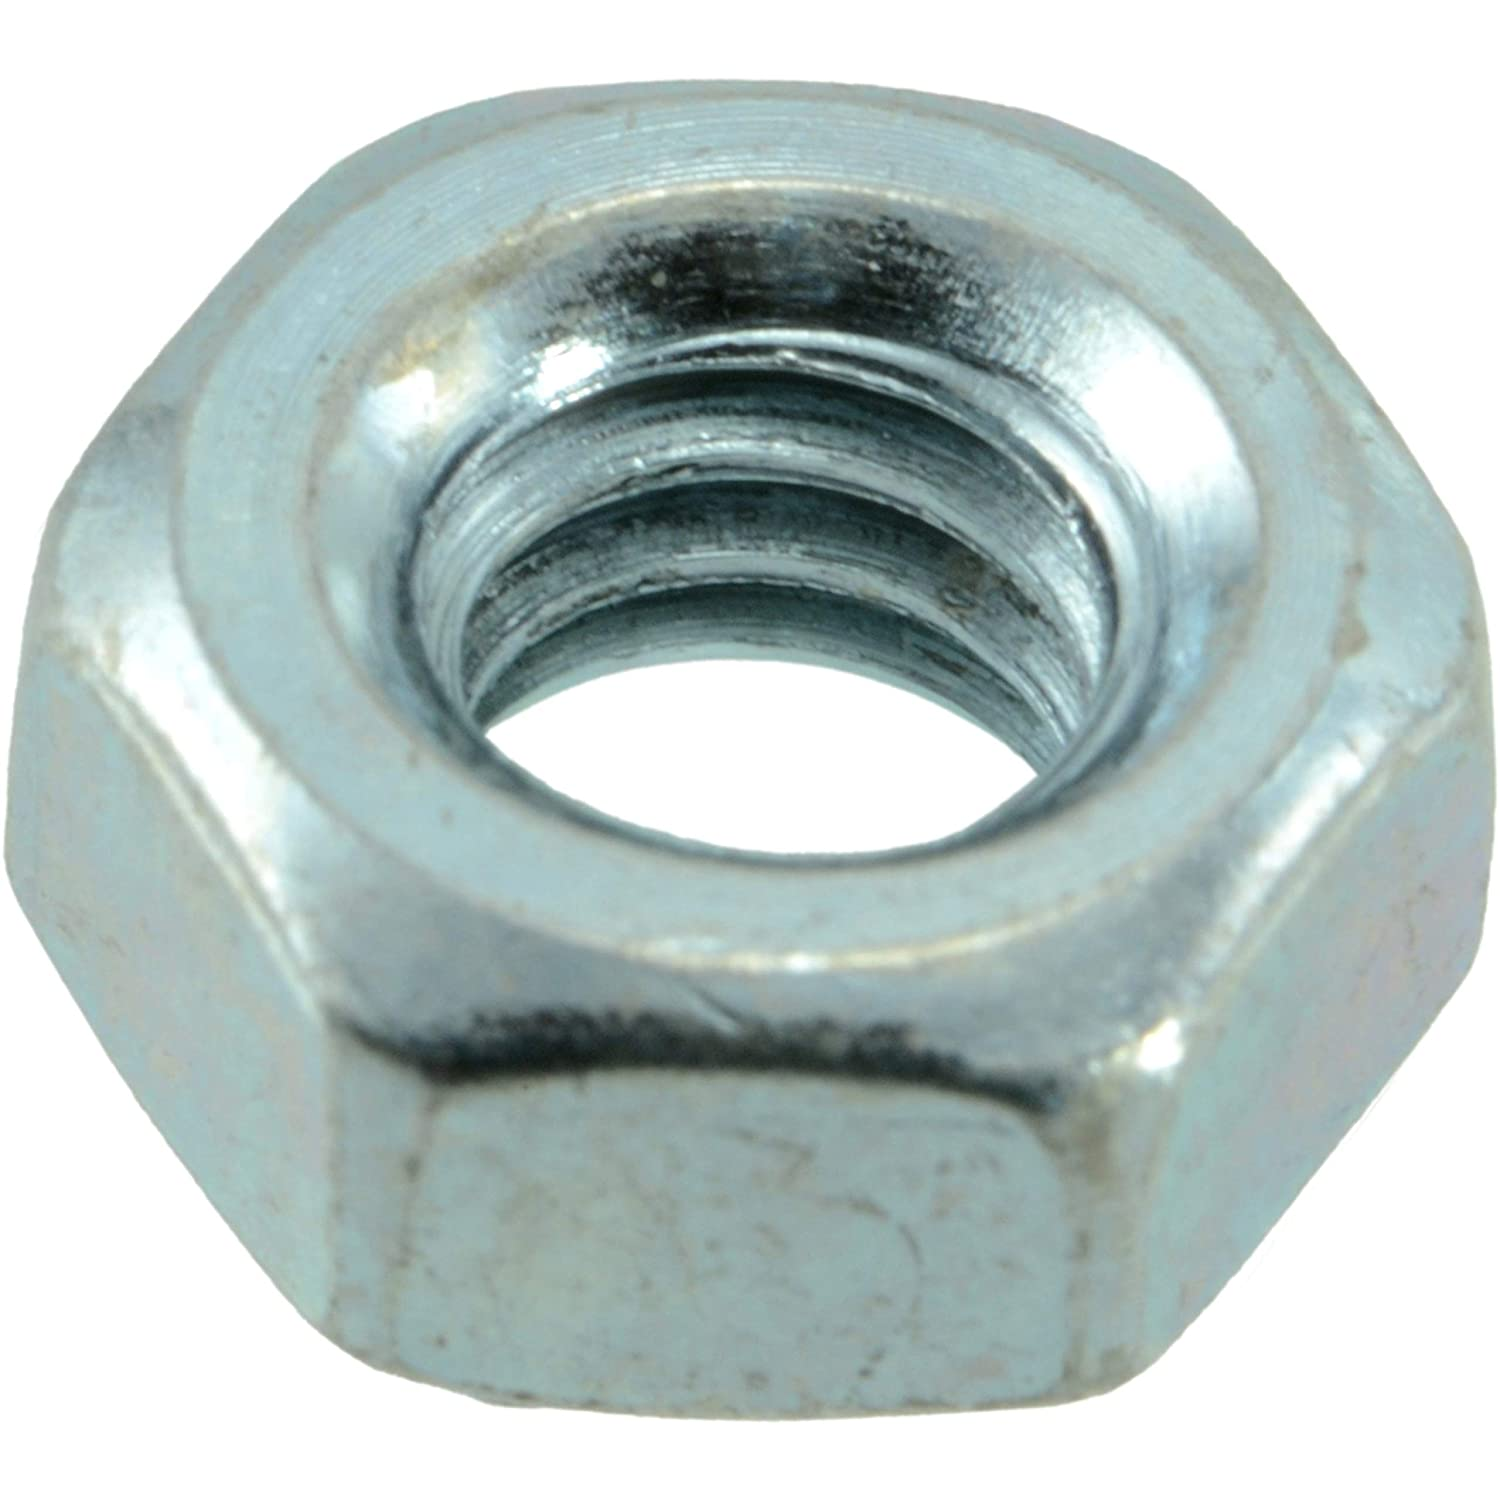 1//4-20 Hard-to-Find Fastener 014973241681 Coarse Finished Hex Nuts Piece-3625